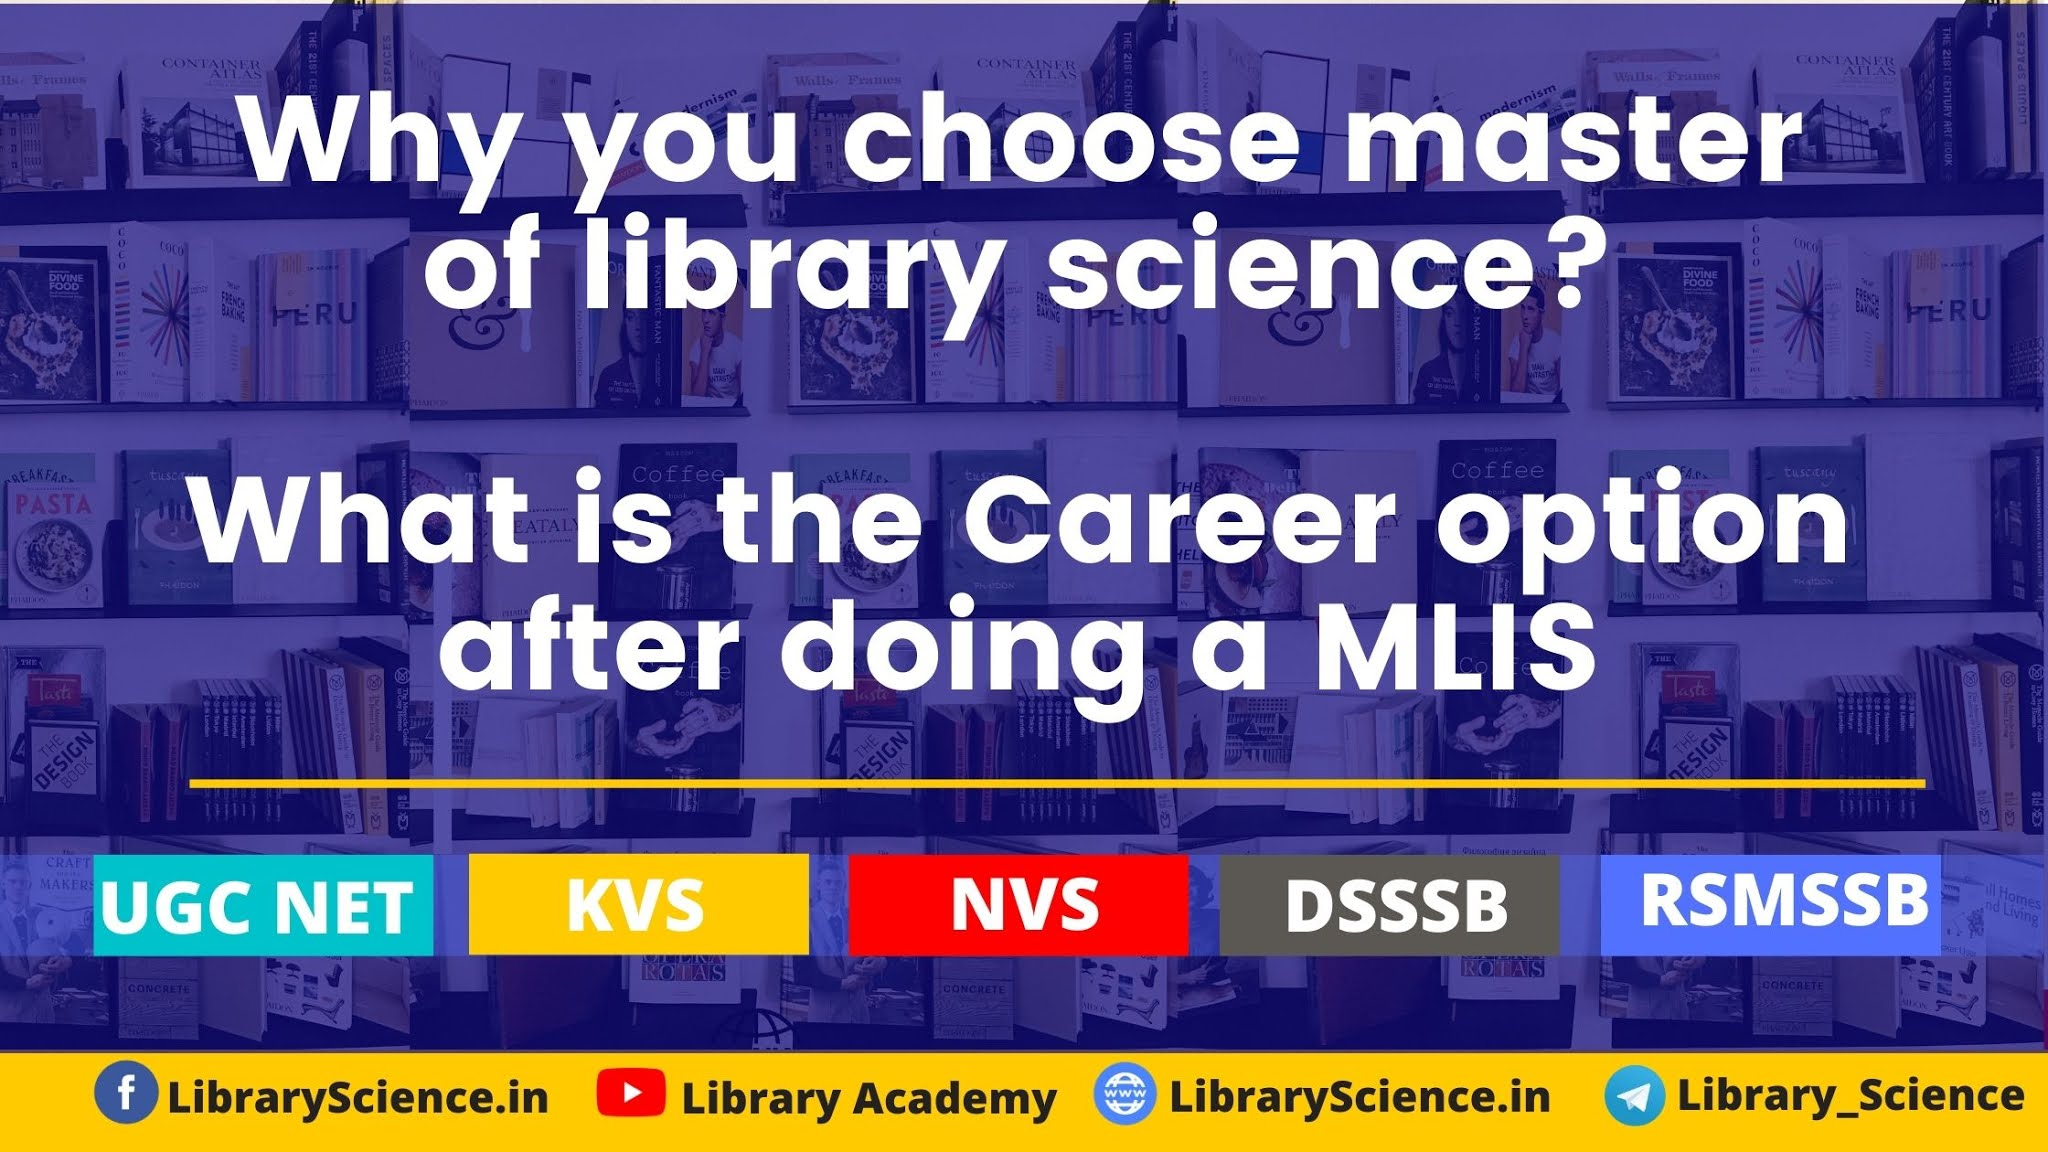 Why you choose master of library science